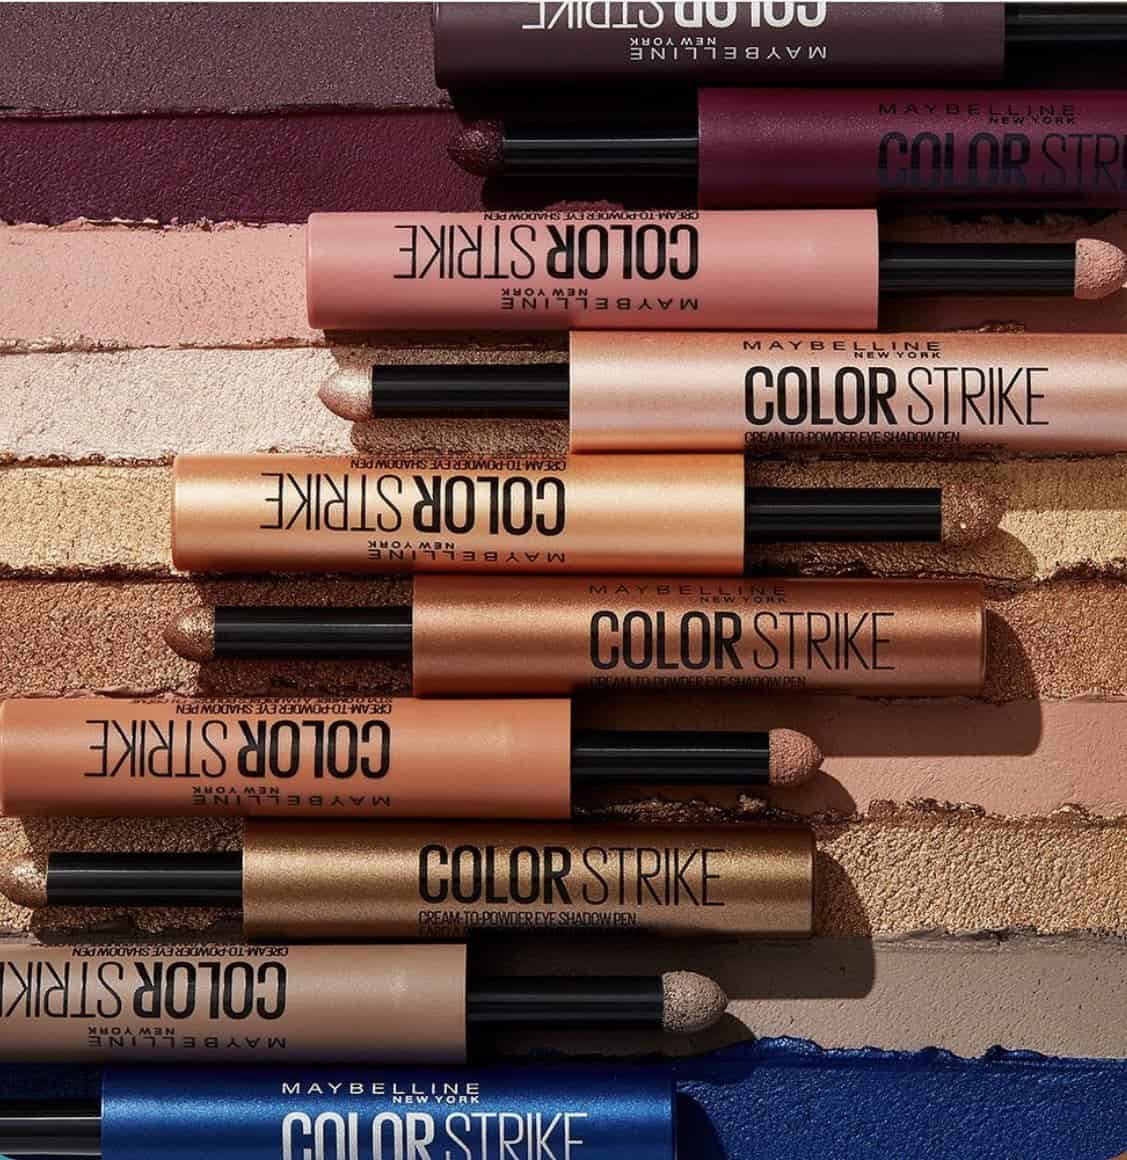 Maybelline Color Strike Eye shadow Pen- Product Review